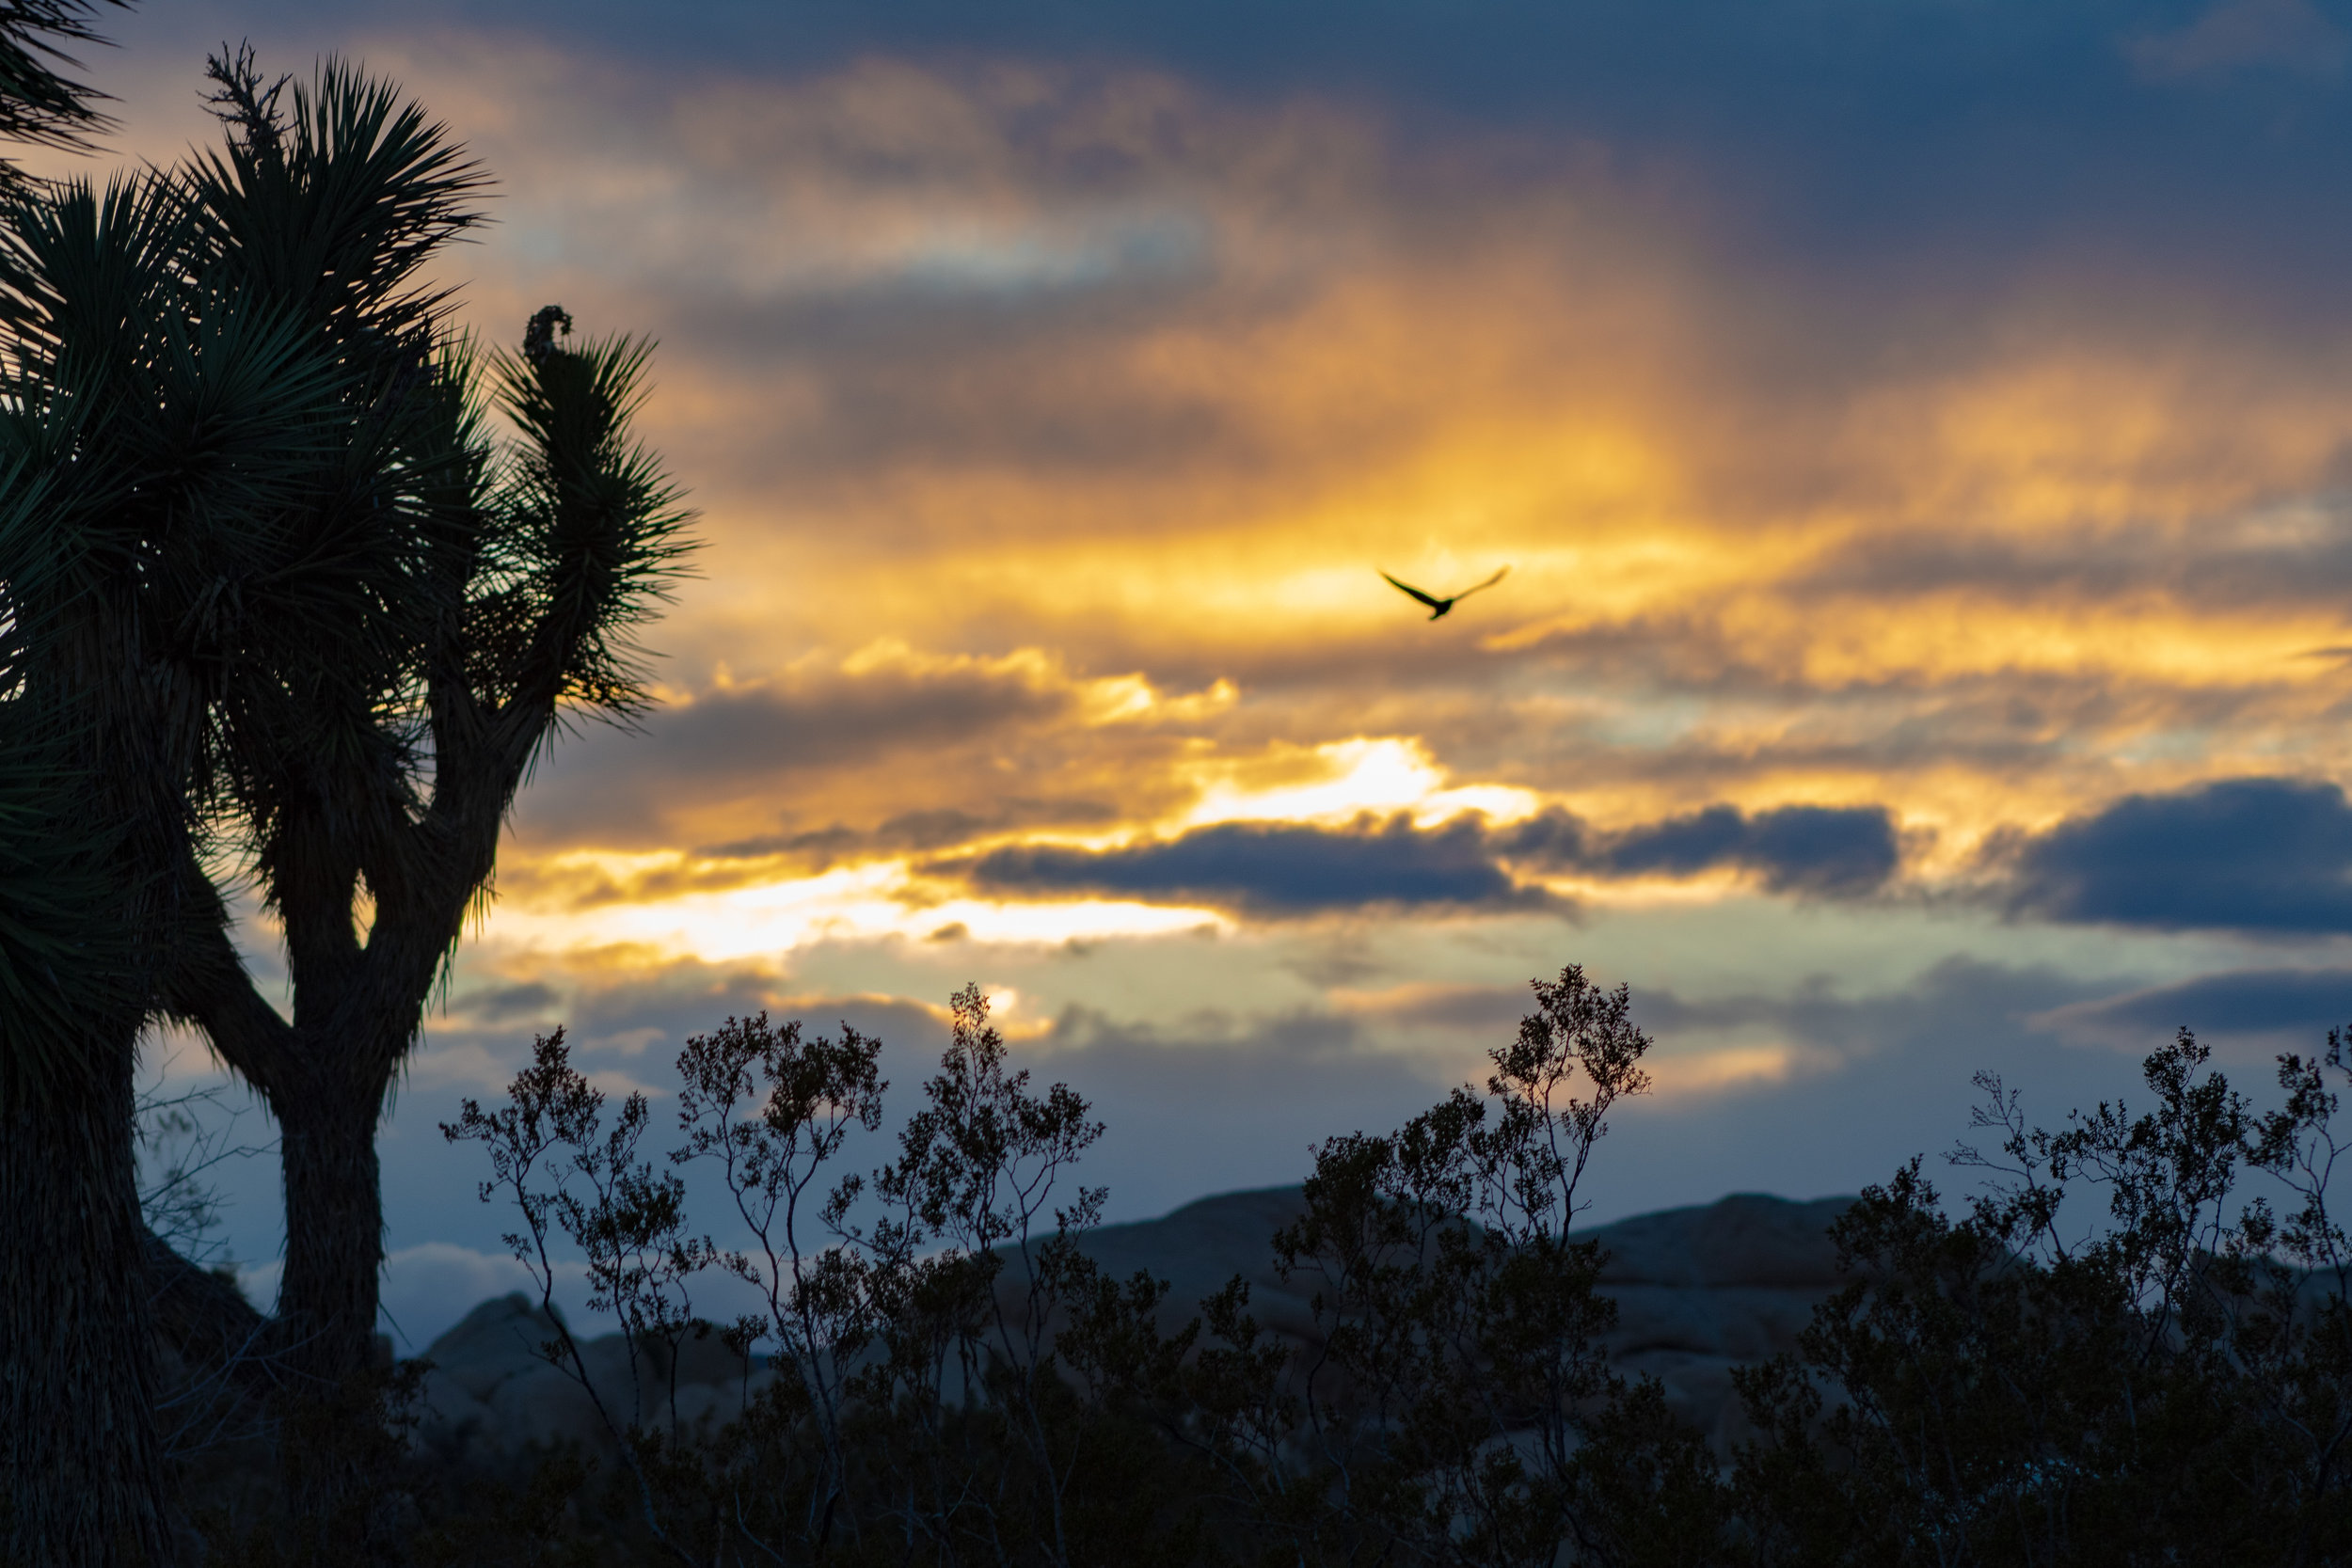 Sunset from Jumbo Rocks campground, Joshua Tree National Park, Ca; photo by Chad Woodward, March 2019.